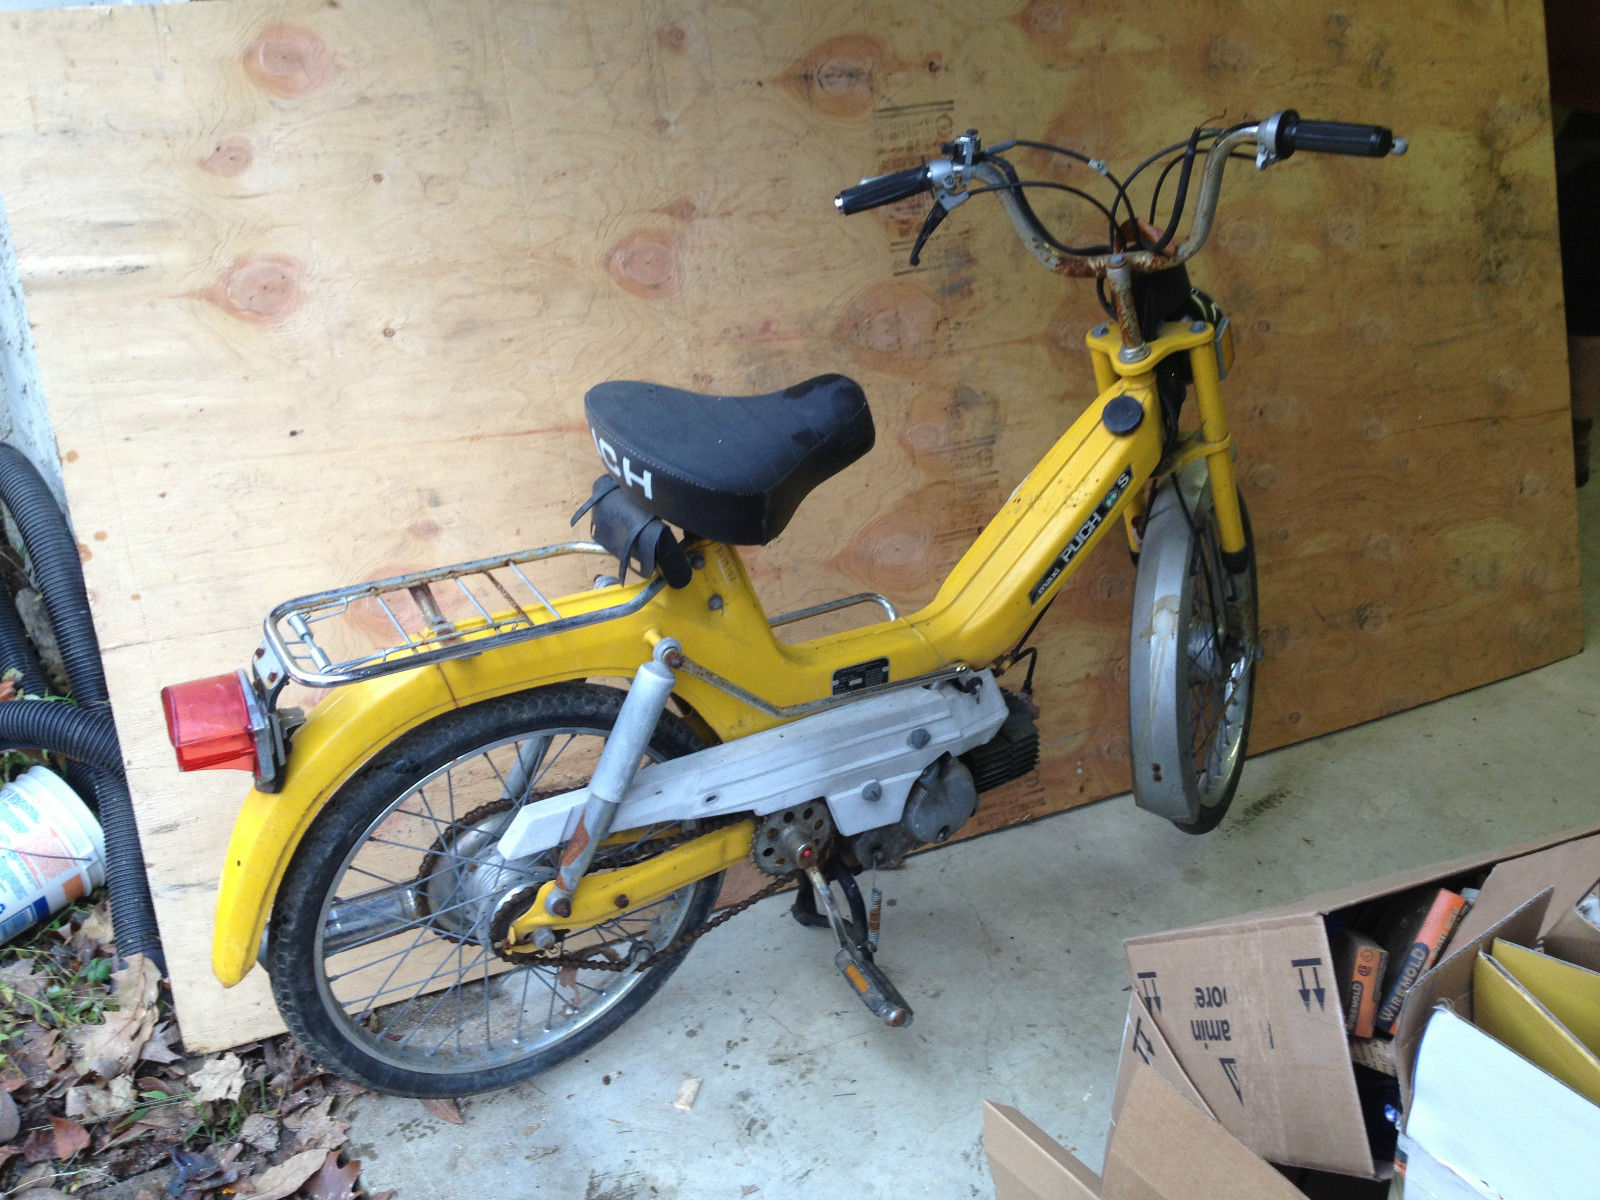 moped vin location  moped  free engine image for user